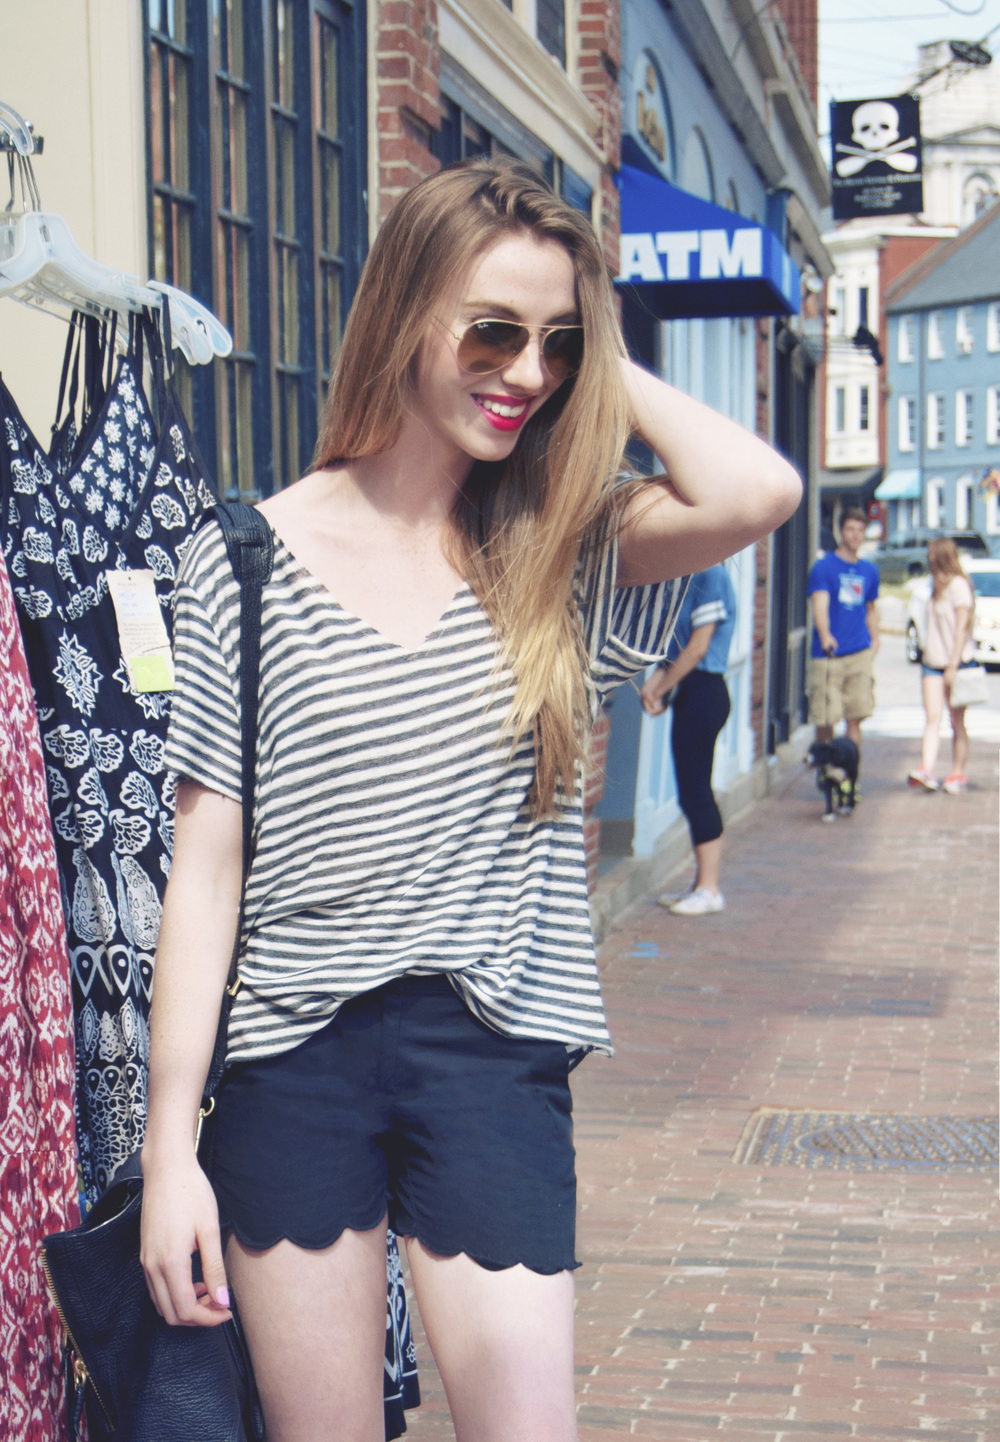 Scallops & Stripes | Girl x Garment